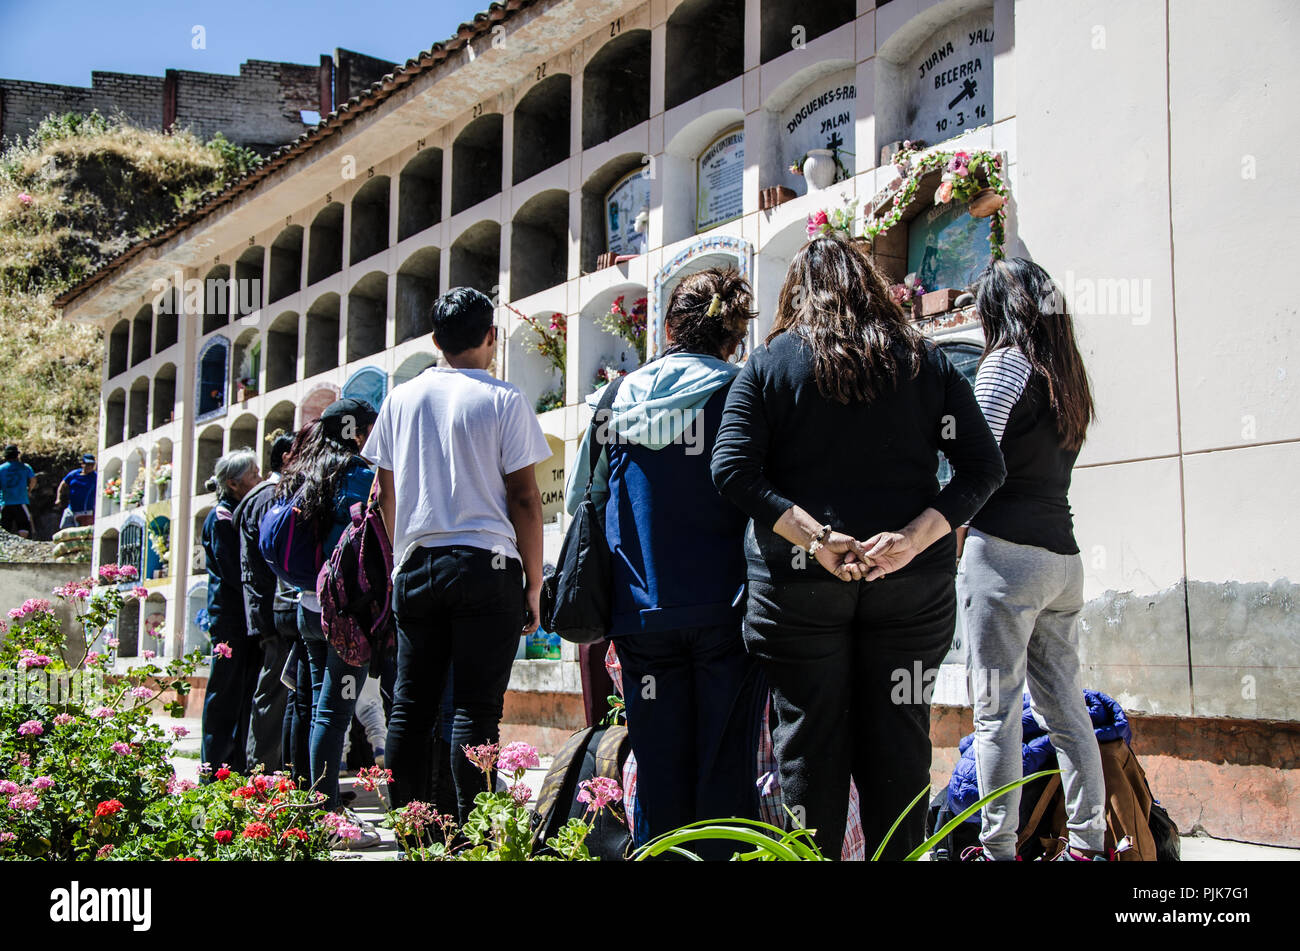 Lima, Peru - JULY 27th 2018 : Patriotic festivities in city of Canta. Tourists of Lima visiting the cemetery of the city of Canta - Stock Image